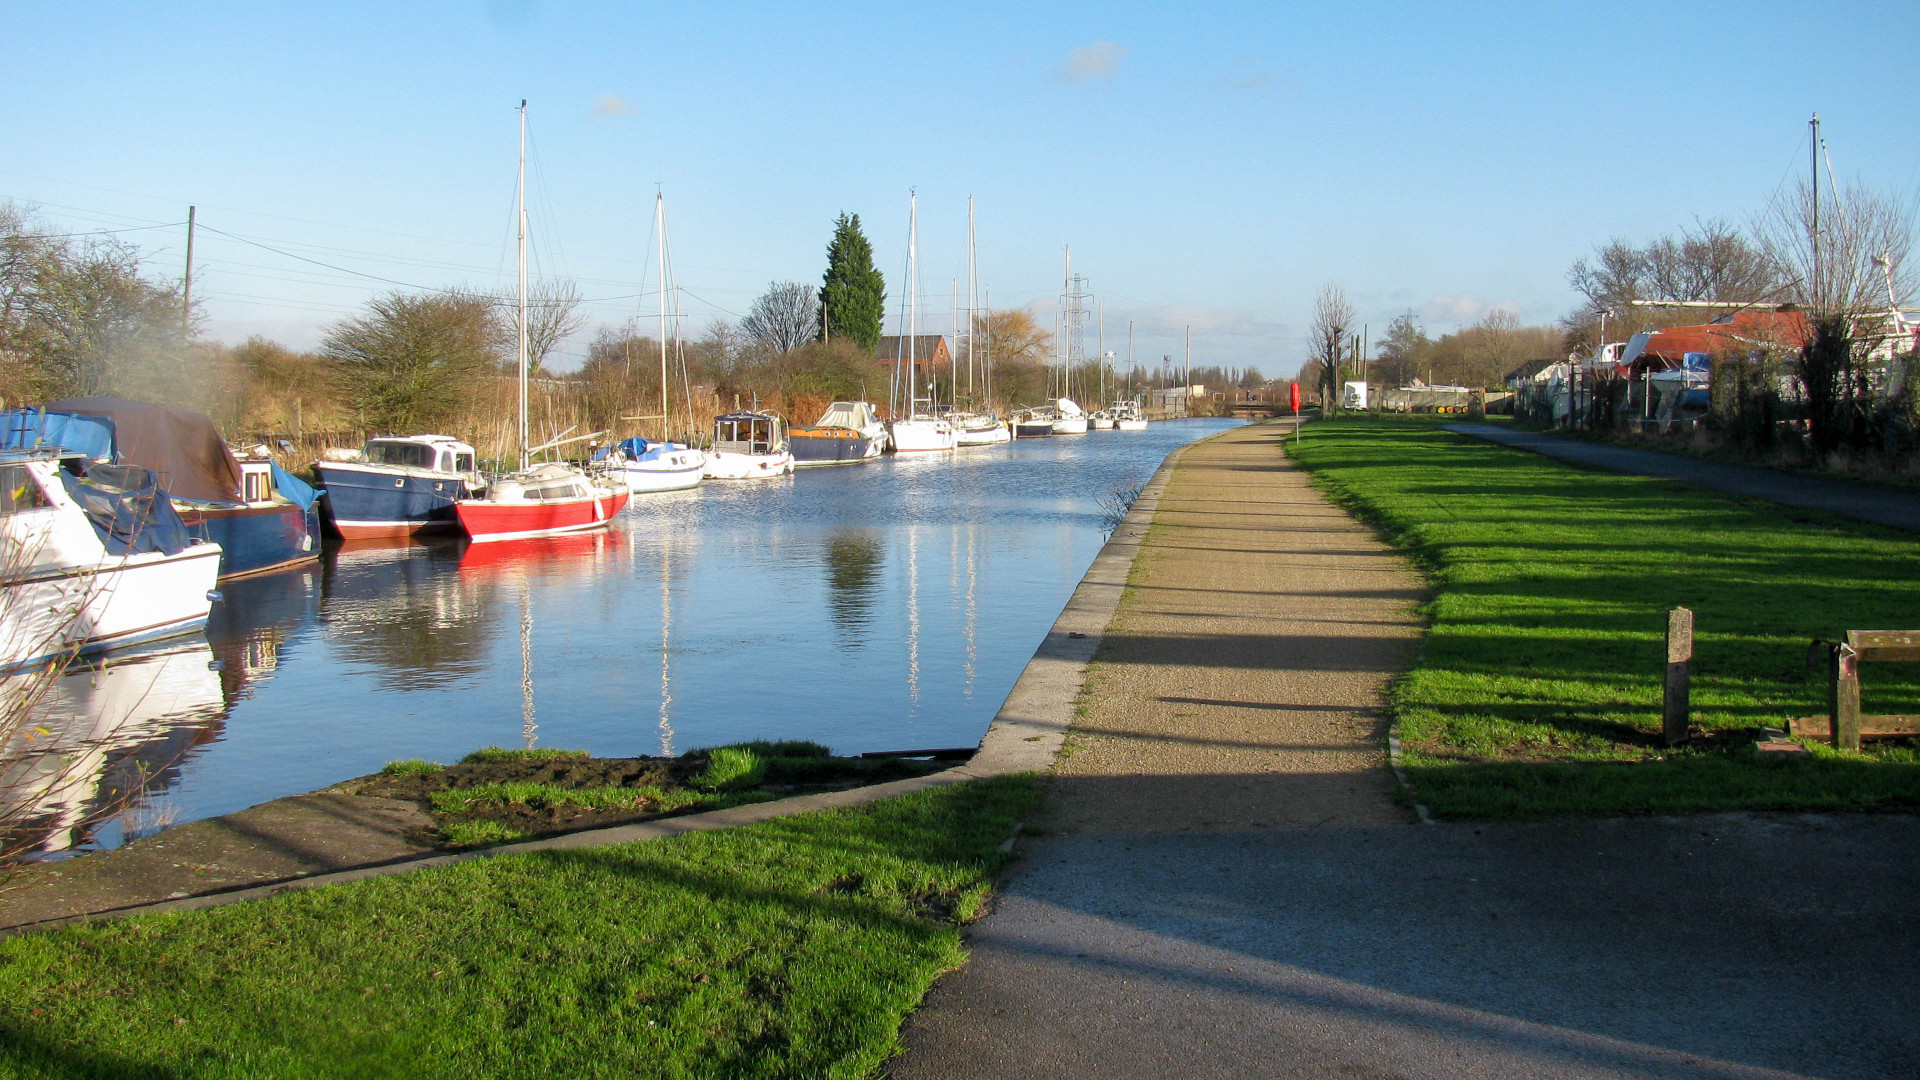 The St Helens Canal is still in use between the first two swing bridges